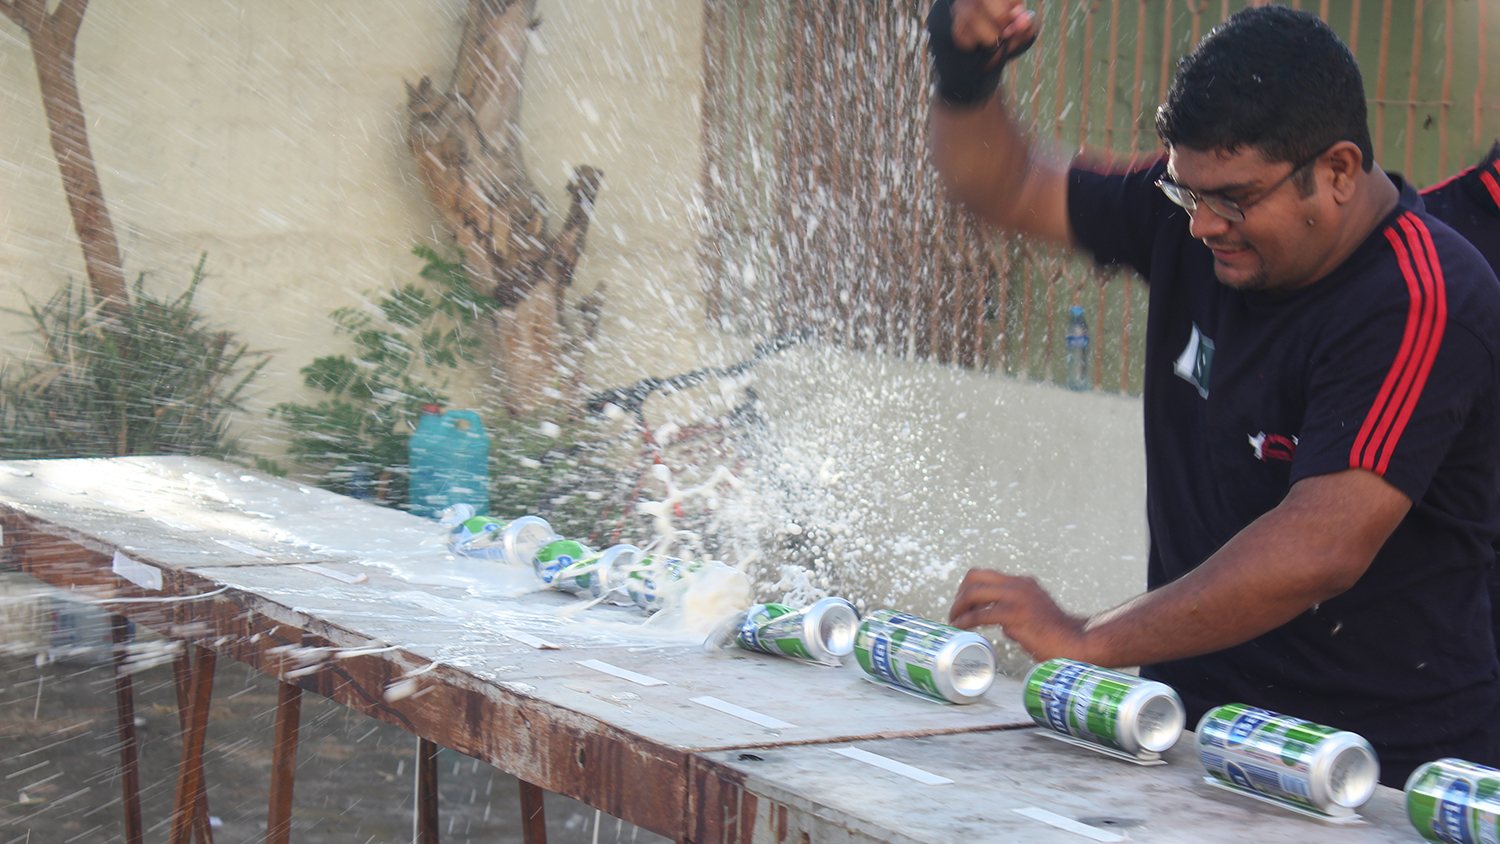 Smashing Cans While Holding a Raw Egg Is a Thing, and This Guy Is the Best at It